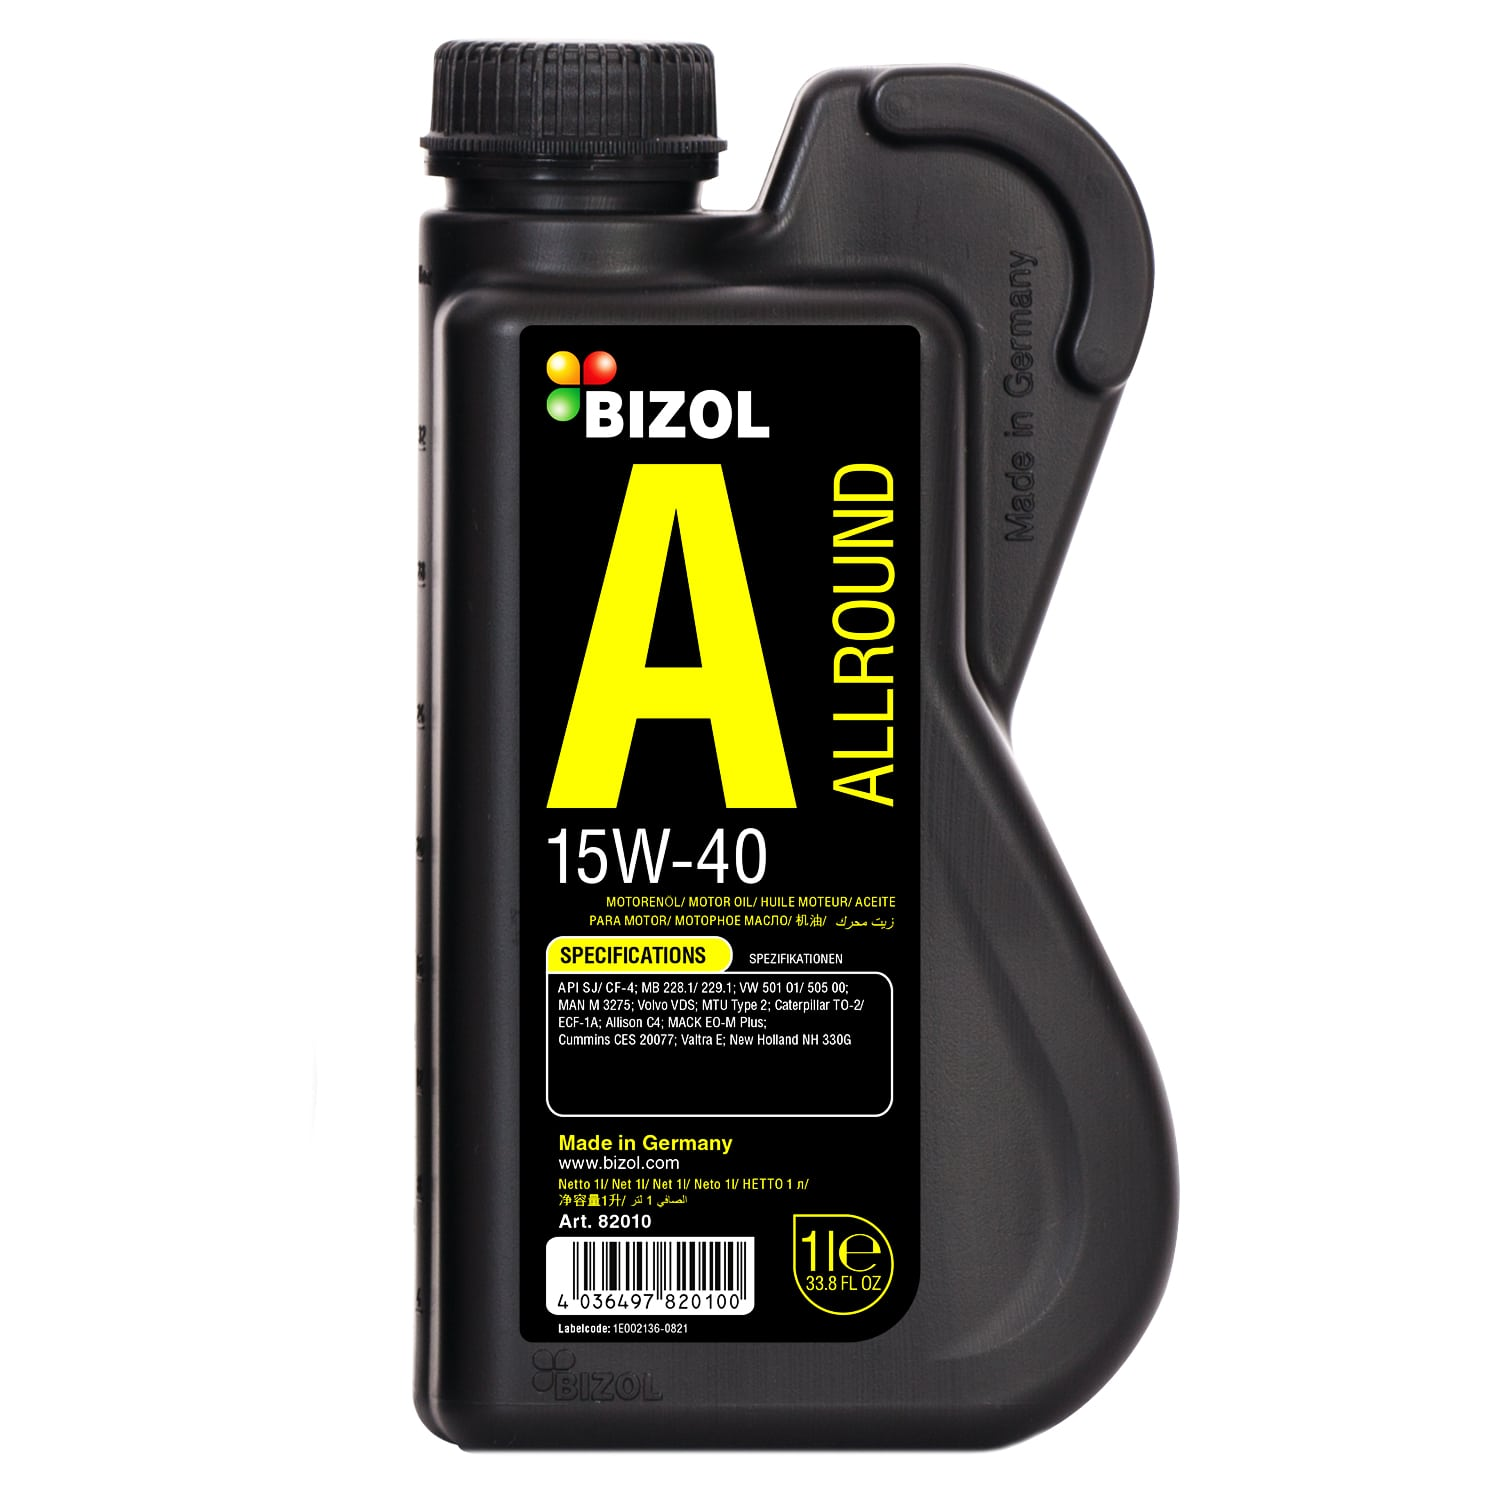 Car Motor Oil - Green Oil, Allround, Protect, Technology